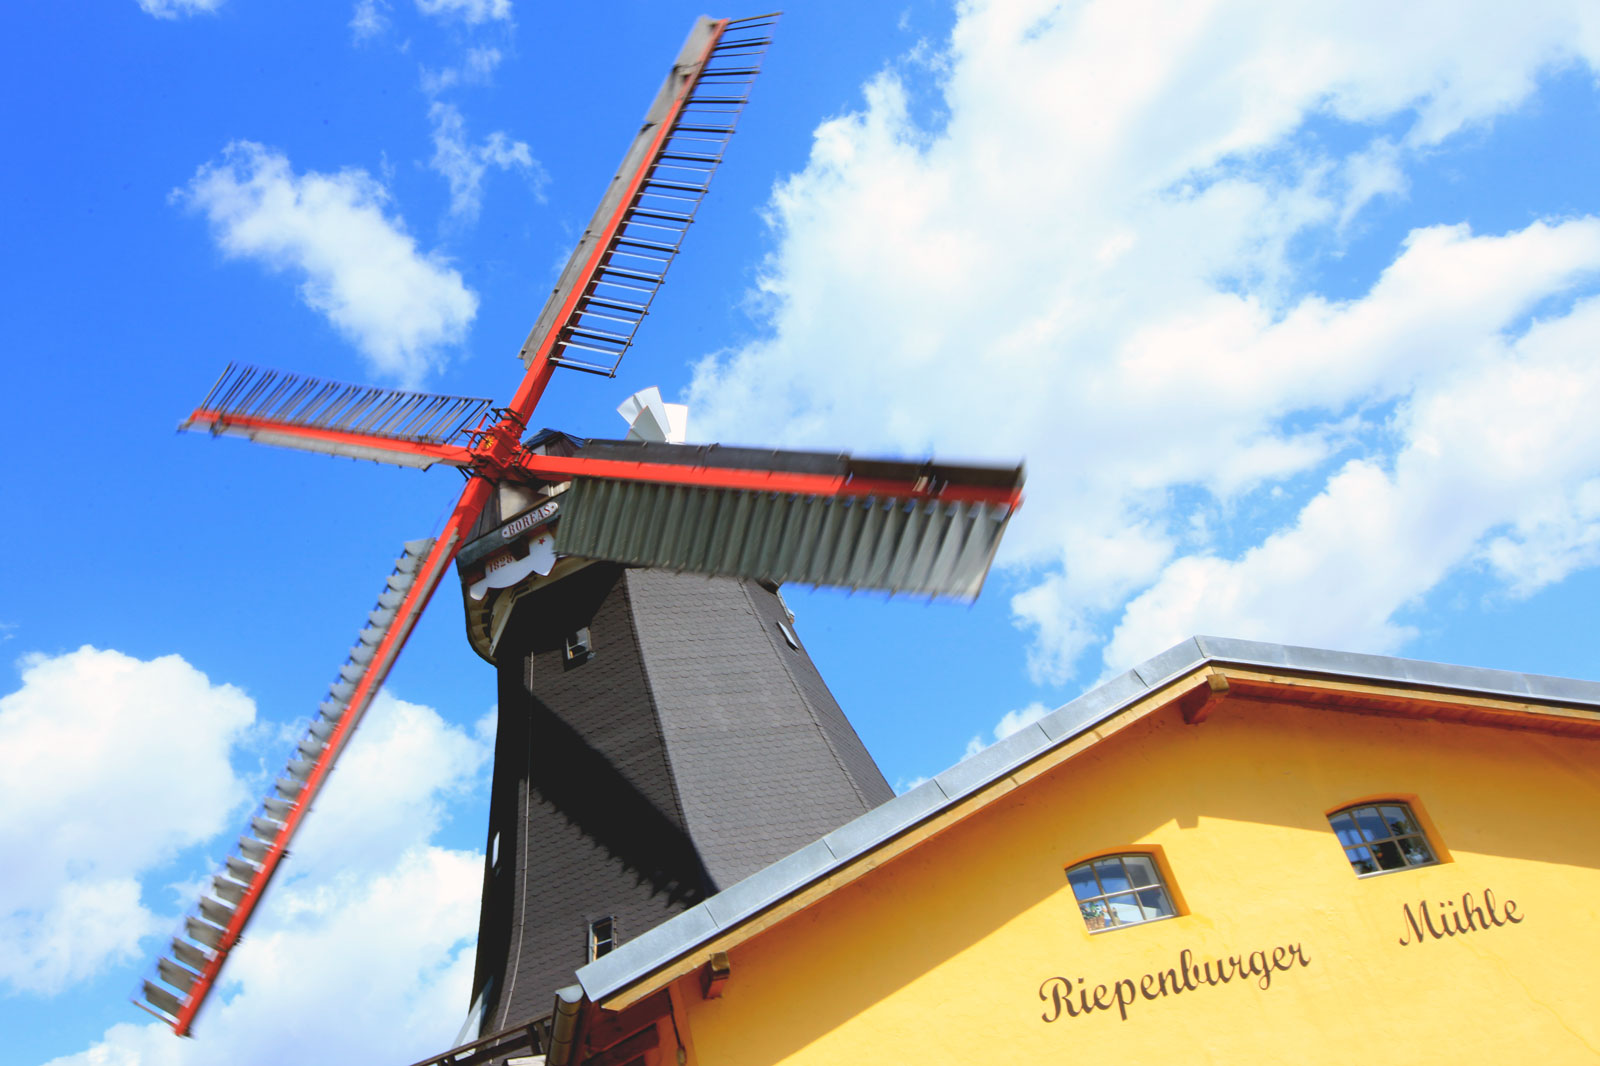 Riepenburger Mühle